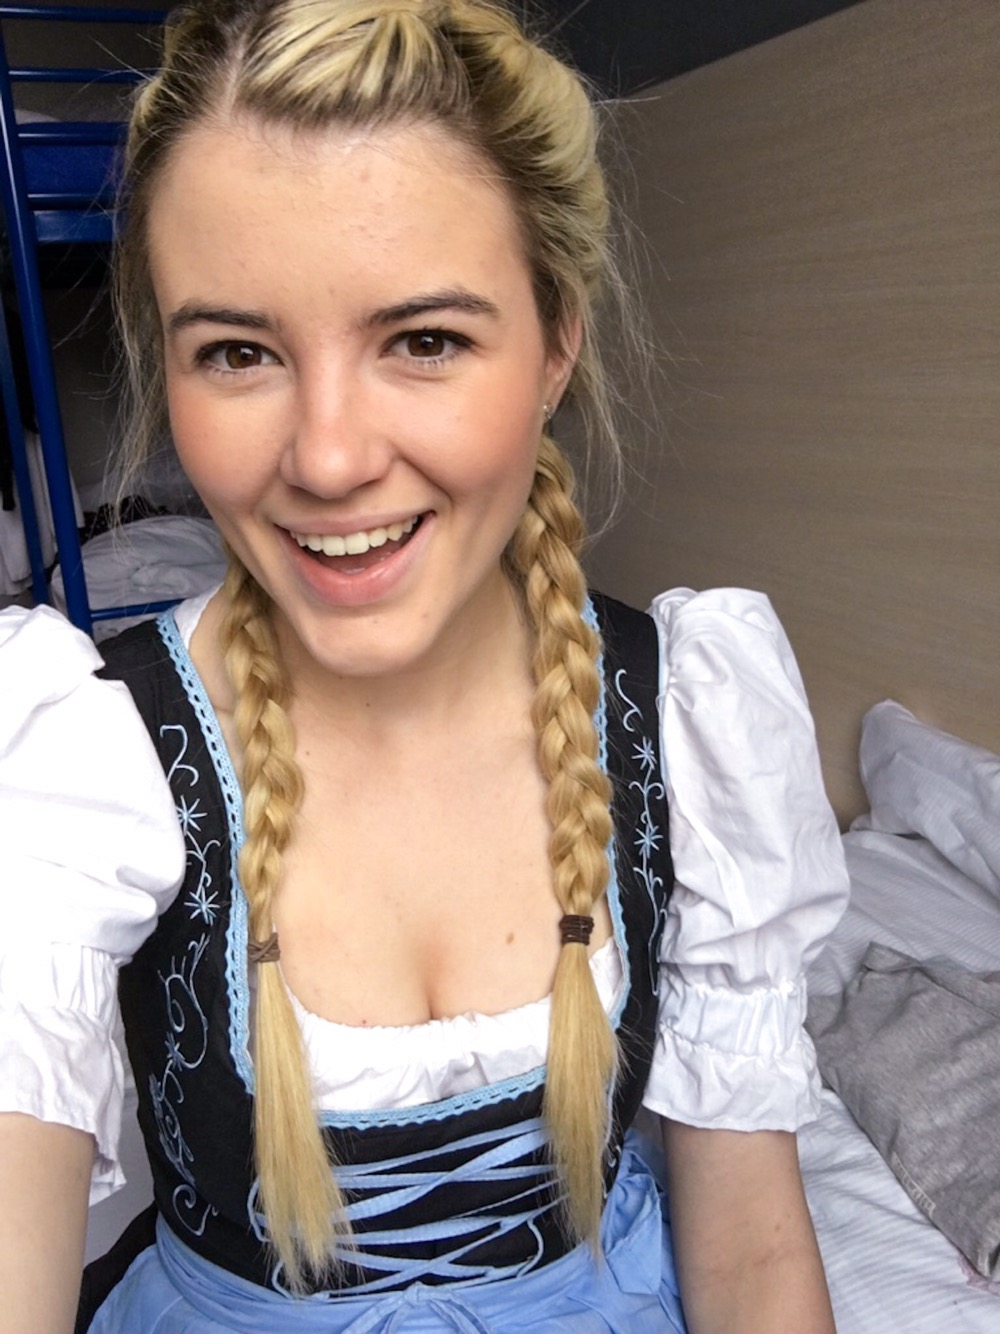 Hair, makeup and dirndl for Oktoberfest